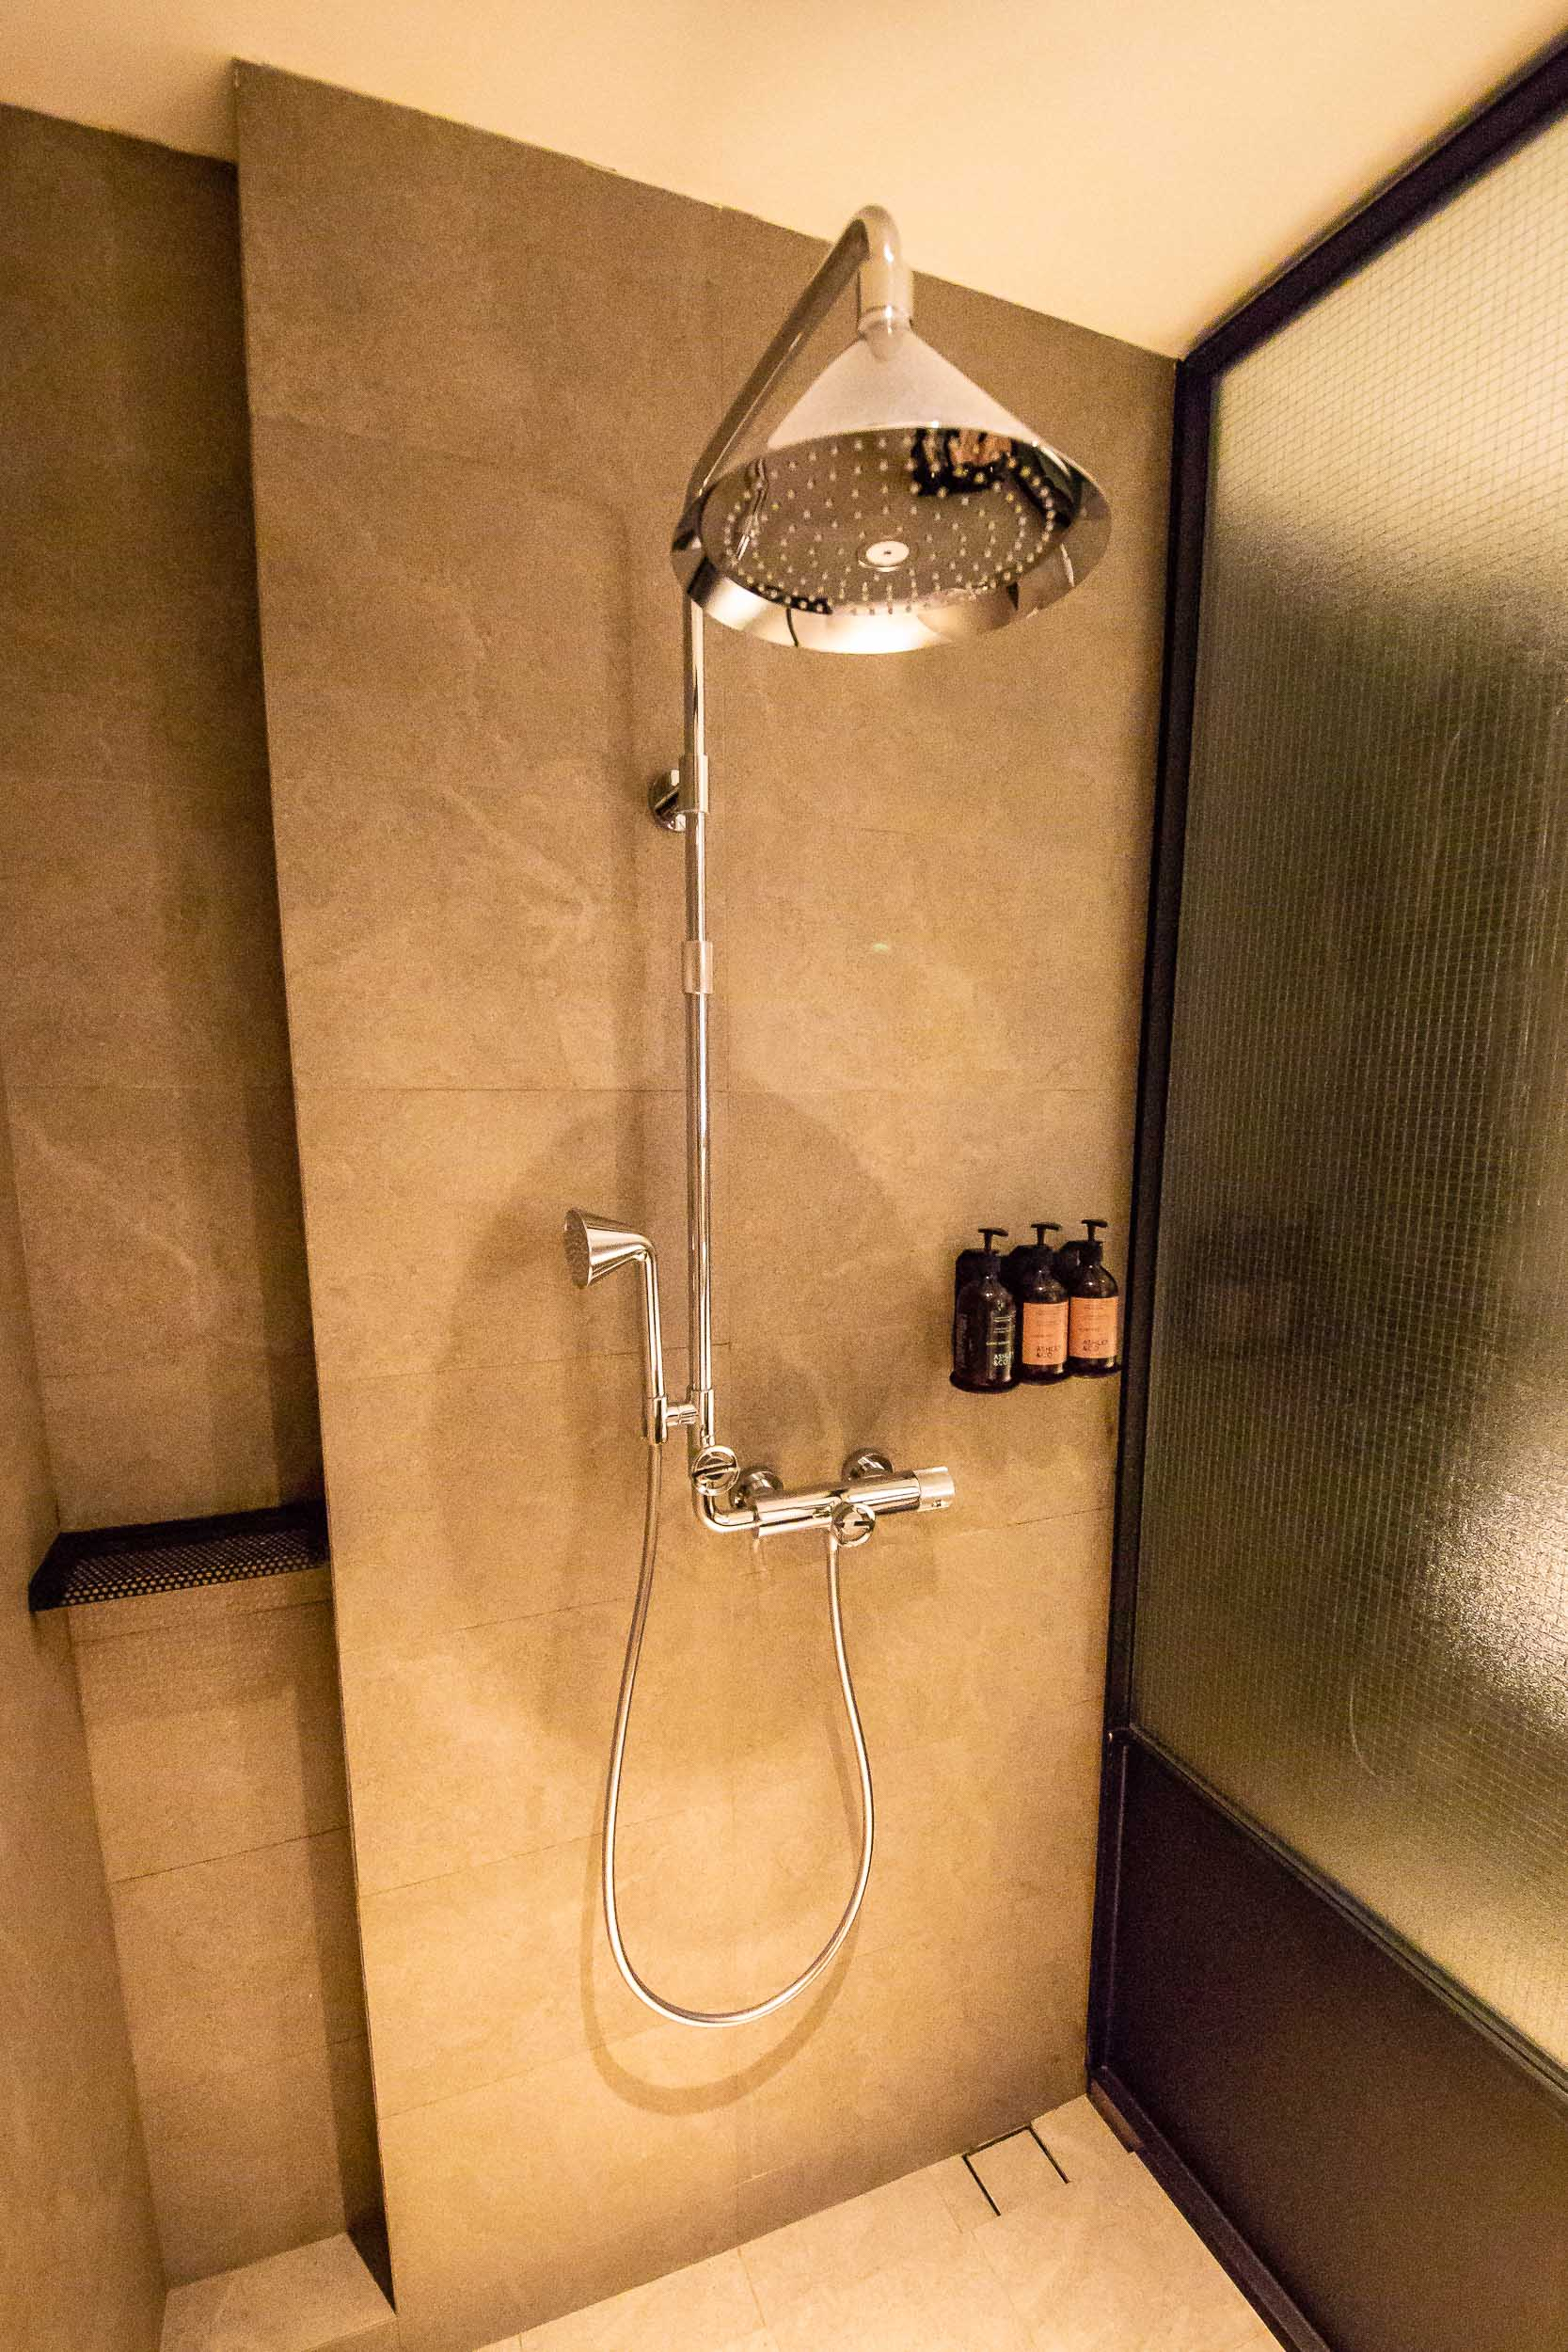 River View Room, Rainfall Shower, The Warehouse Hotel, Singapore